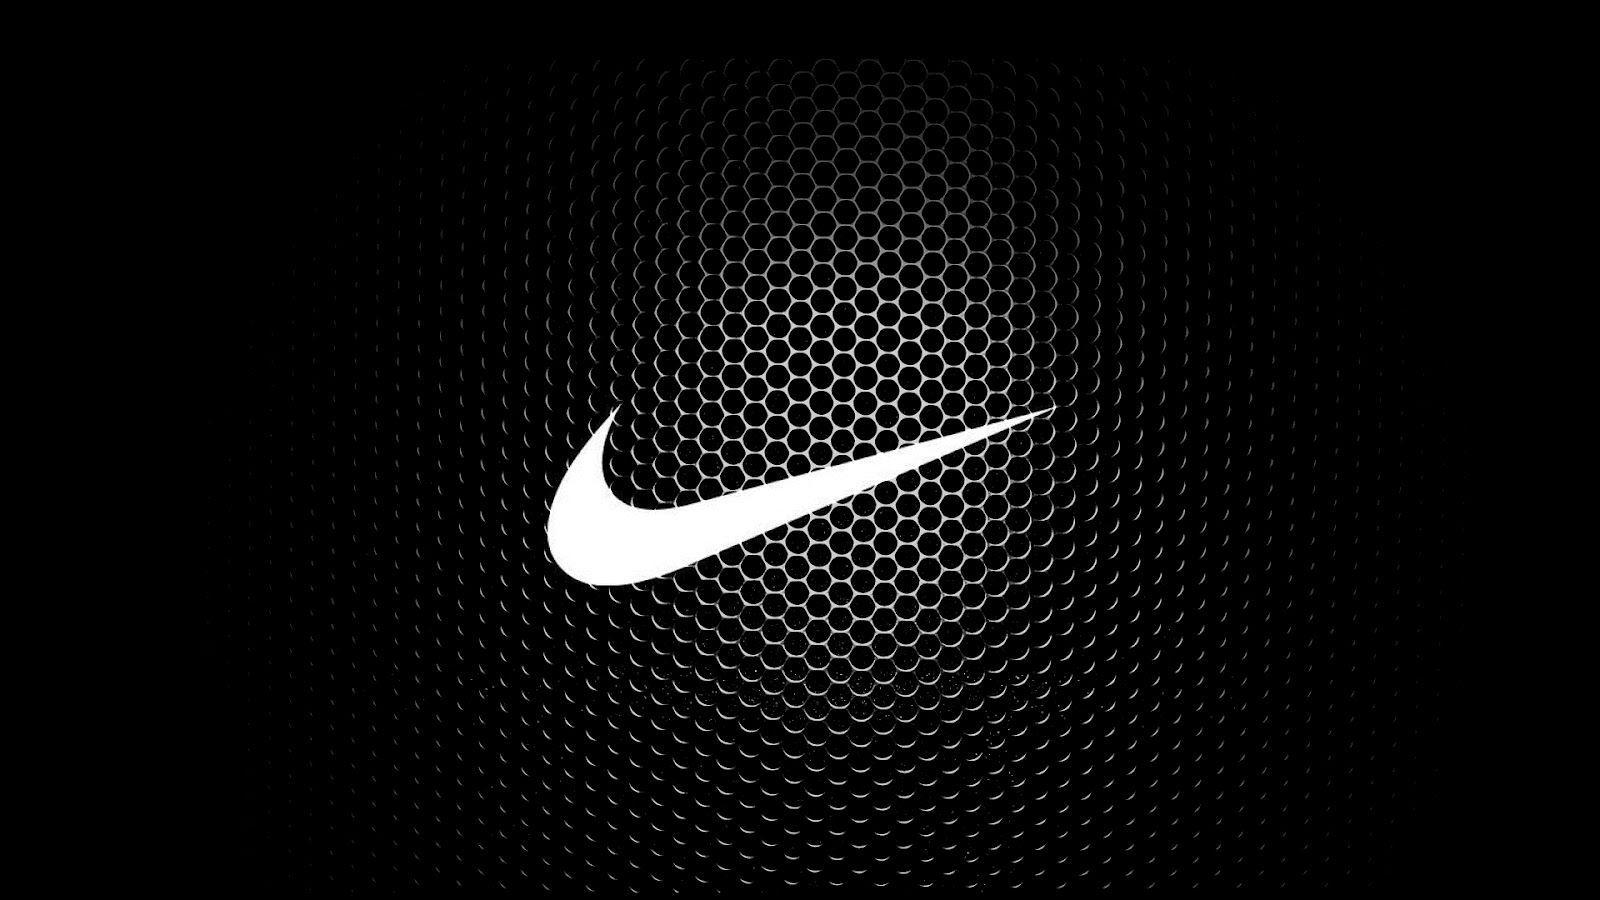 Nike 3d wallpapers wallpaper cave for Wallpaper 3d white